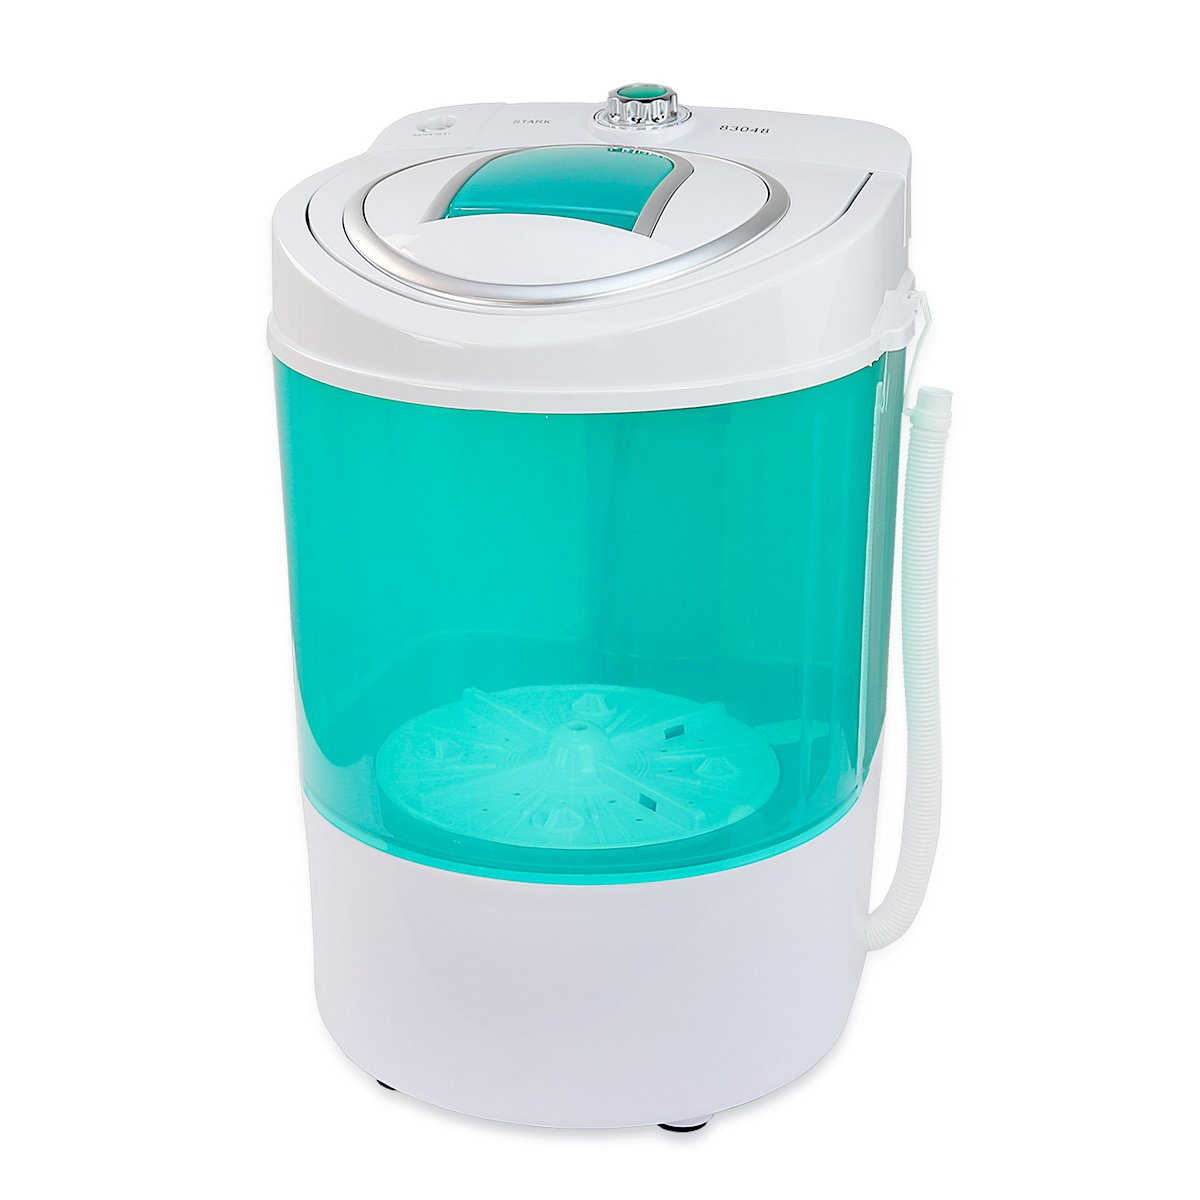 Electric small mini portable compact washer washing machine 110v 9lb capacity ebay - Small space washing machines set ...